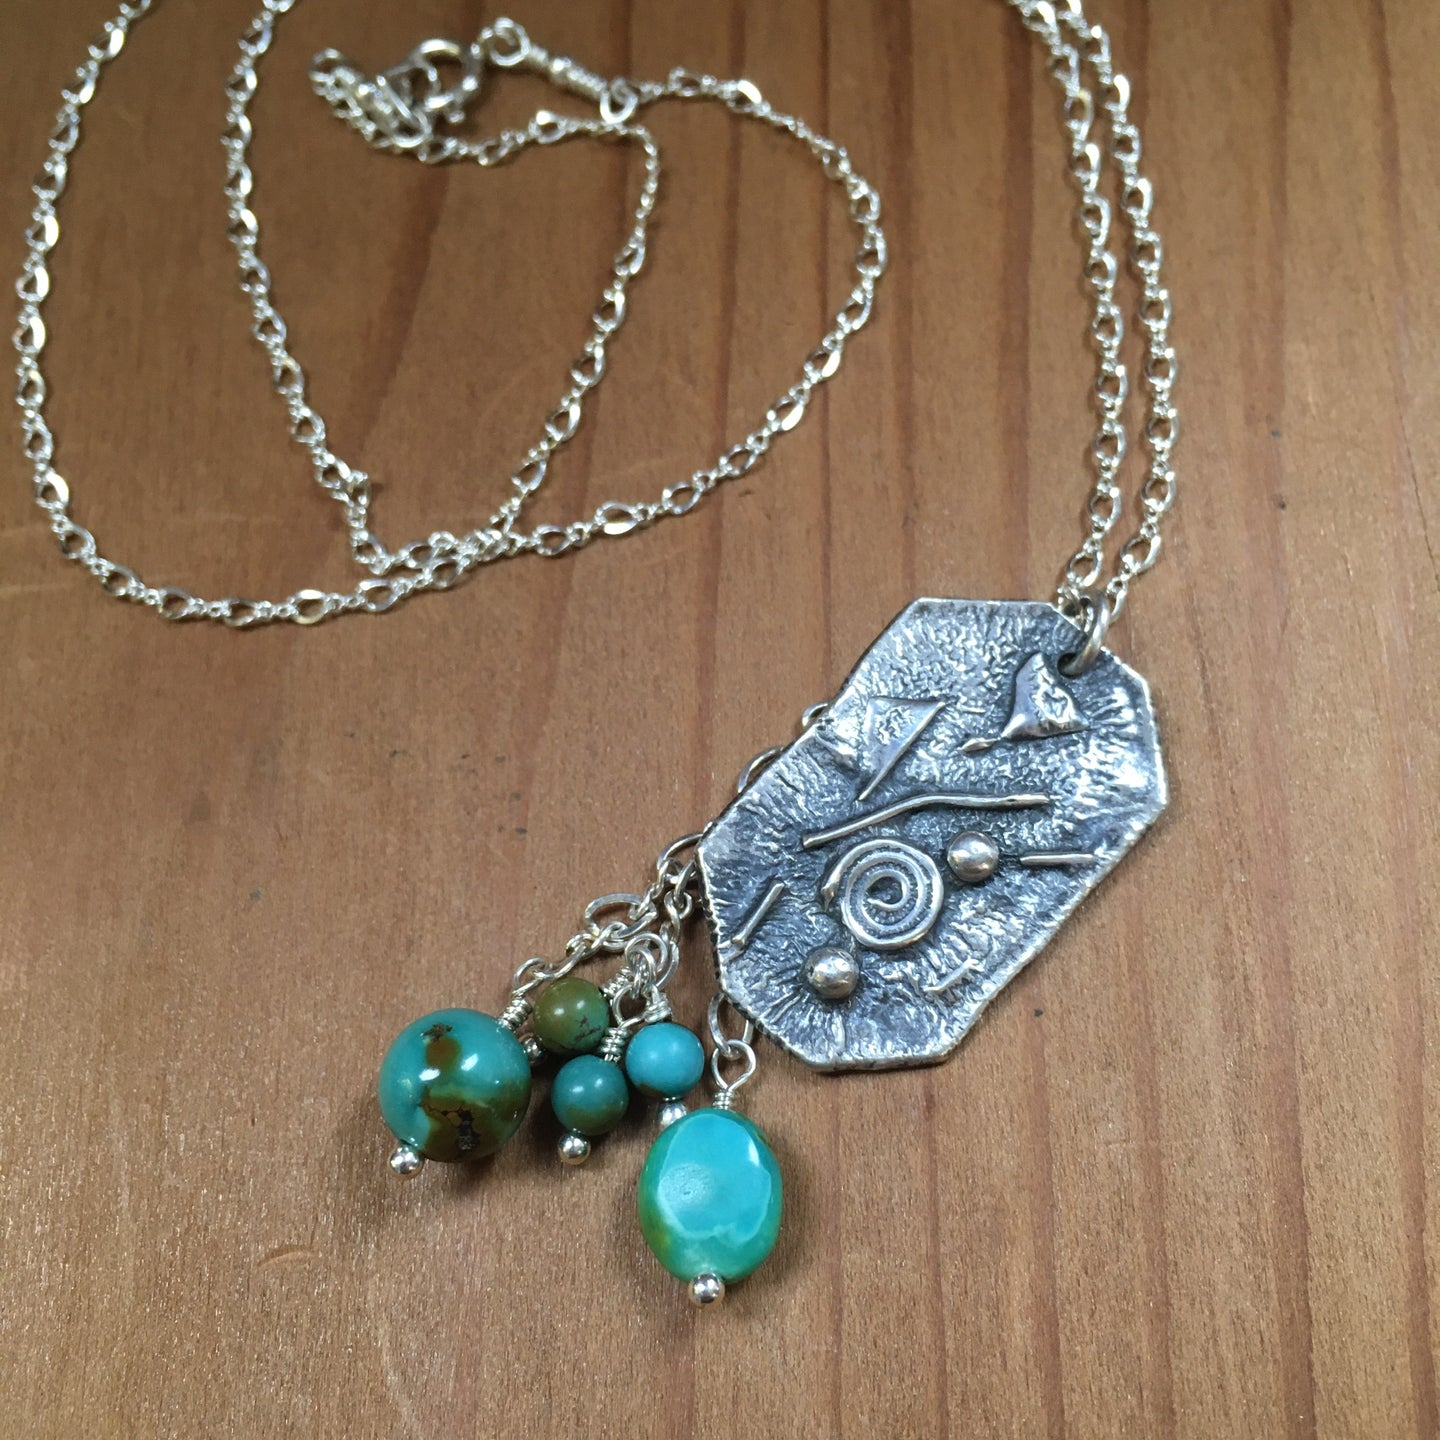 Silver Swirls and Bits Calming Necklace with Hubei Turquoise Beads & Textured Silver All Handmade Reticulated Sterling